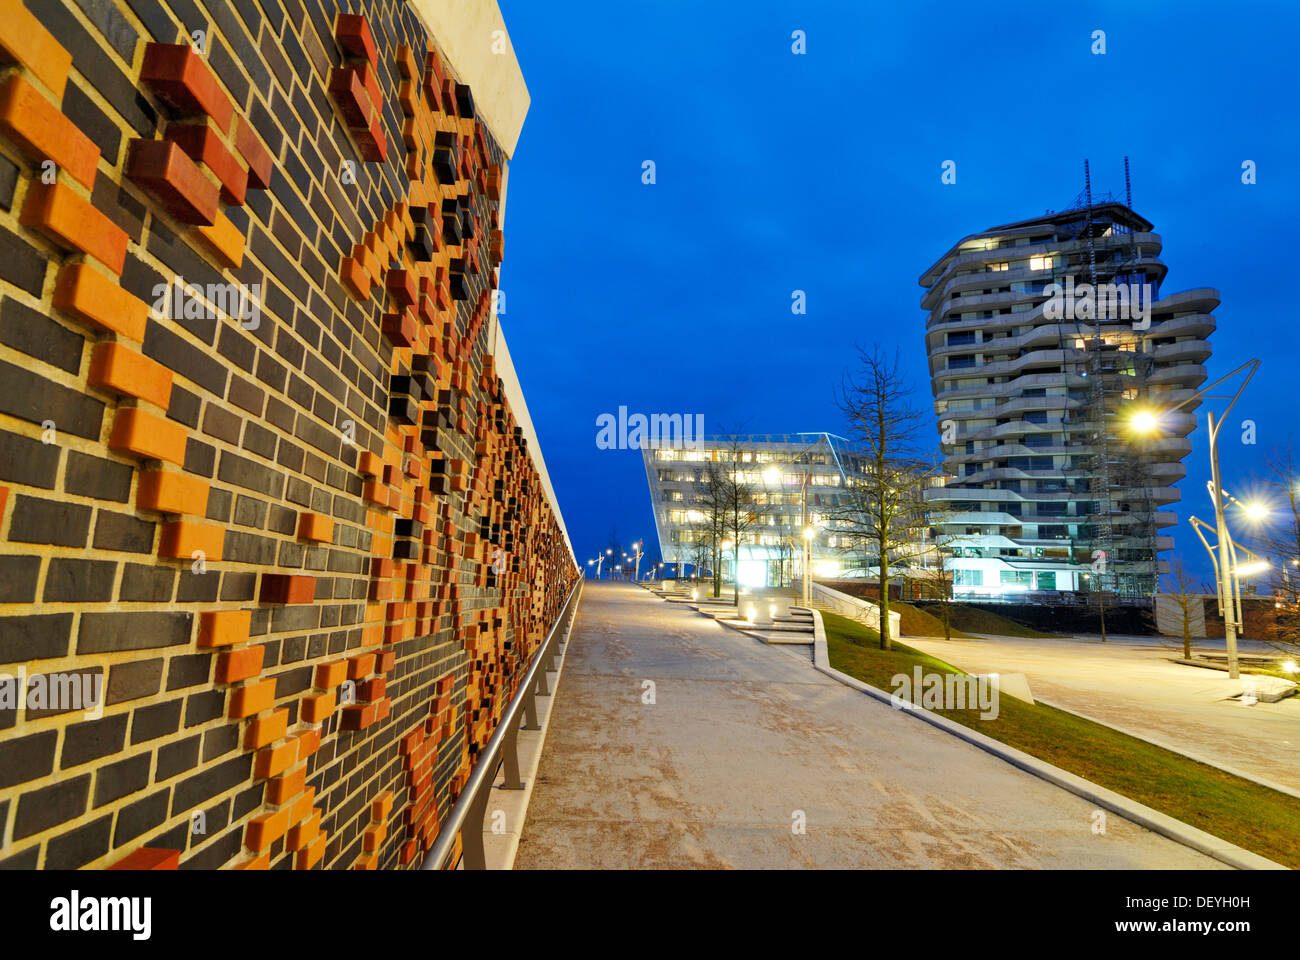 Marco Polo Tower and Unilever Headquarters, Strandkai quay, HafenCity district, Hamburg - Stock Image